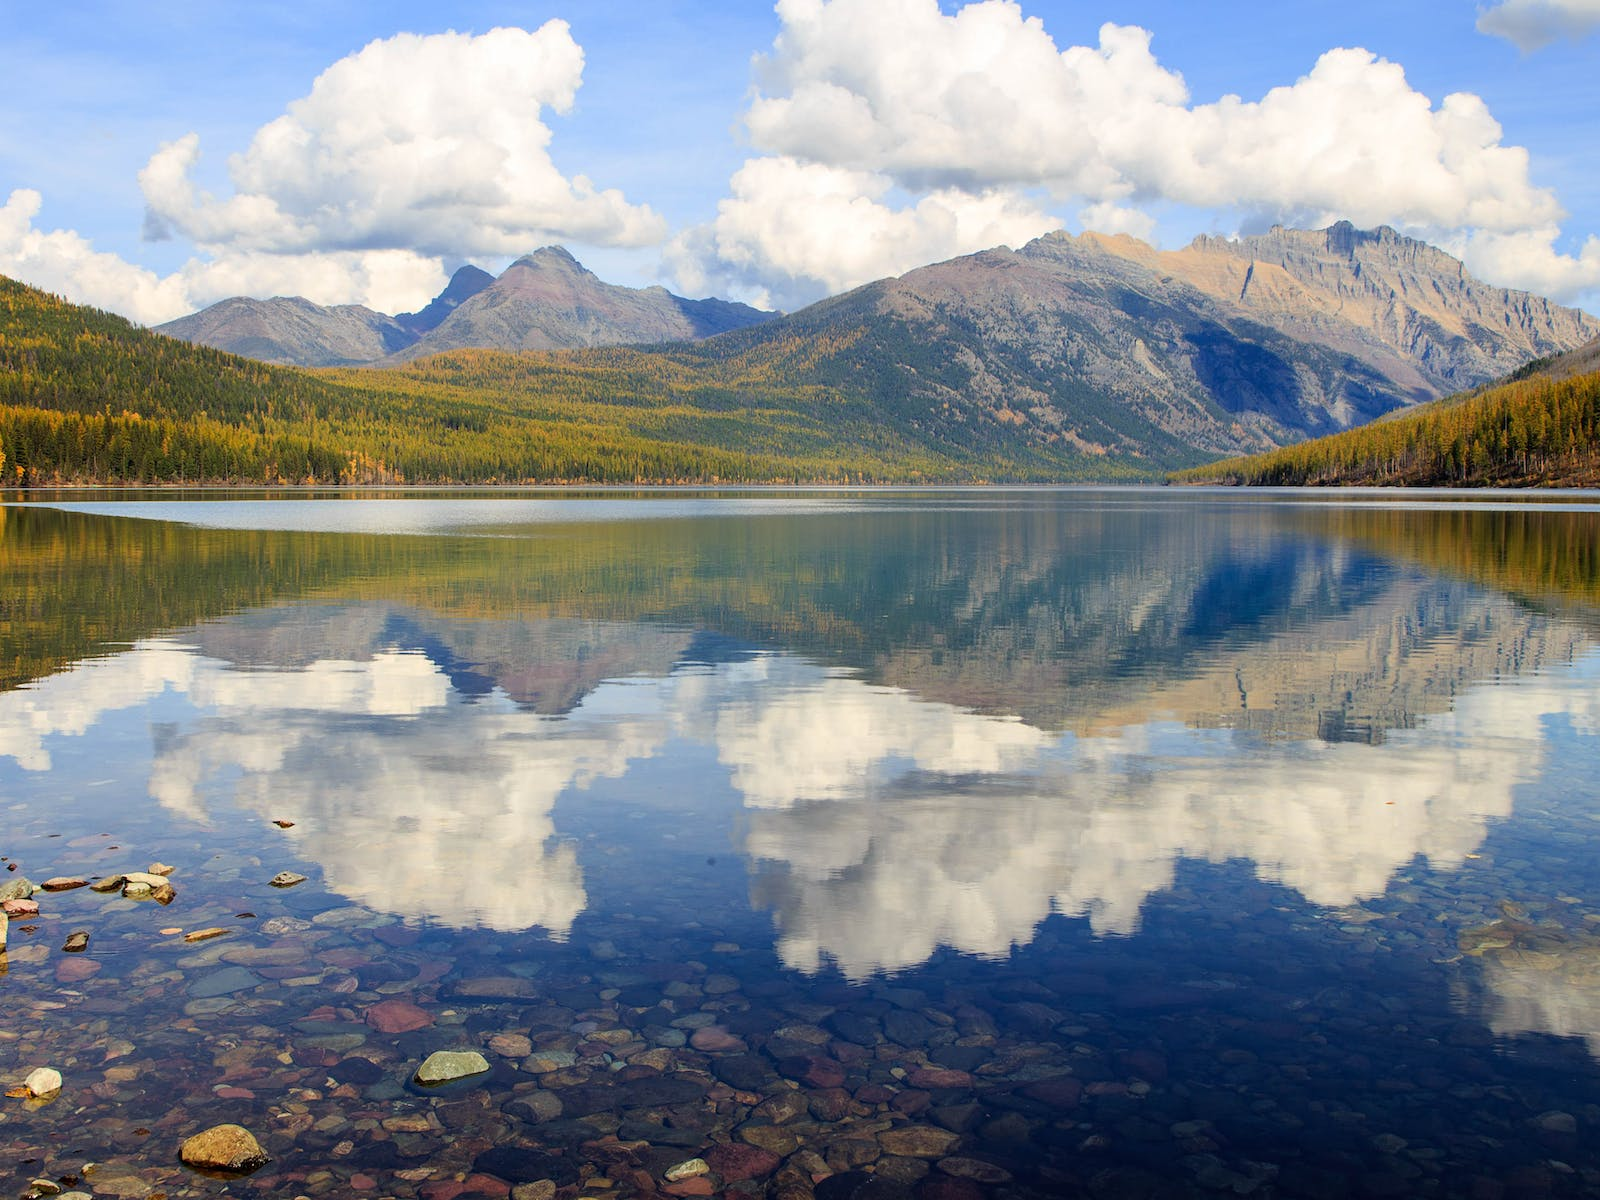 western montana mountains reflected in body of water